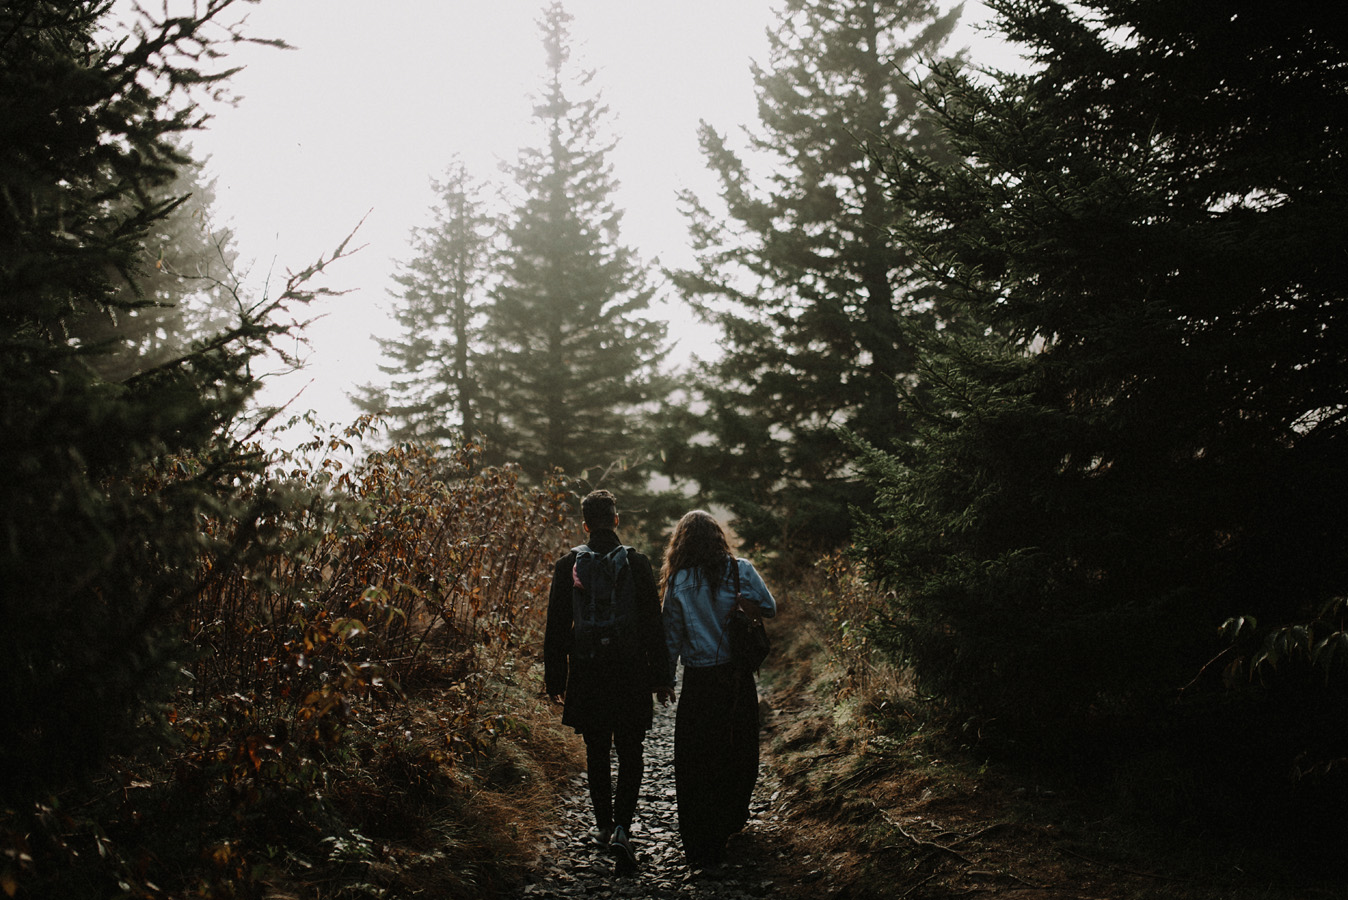 Sunrise Engagement Adventure Hiking Session in the Blue Ridge Smoky Mountains Forest